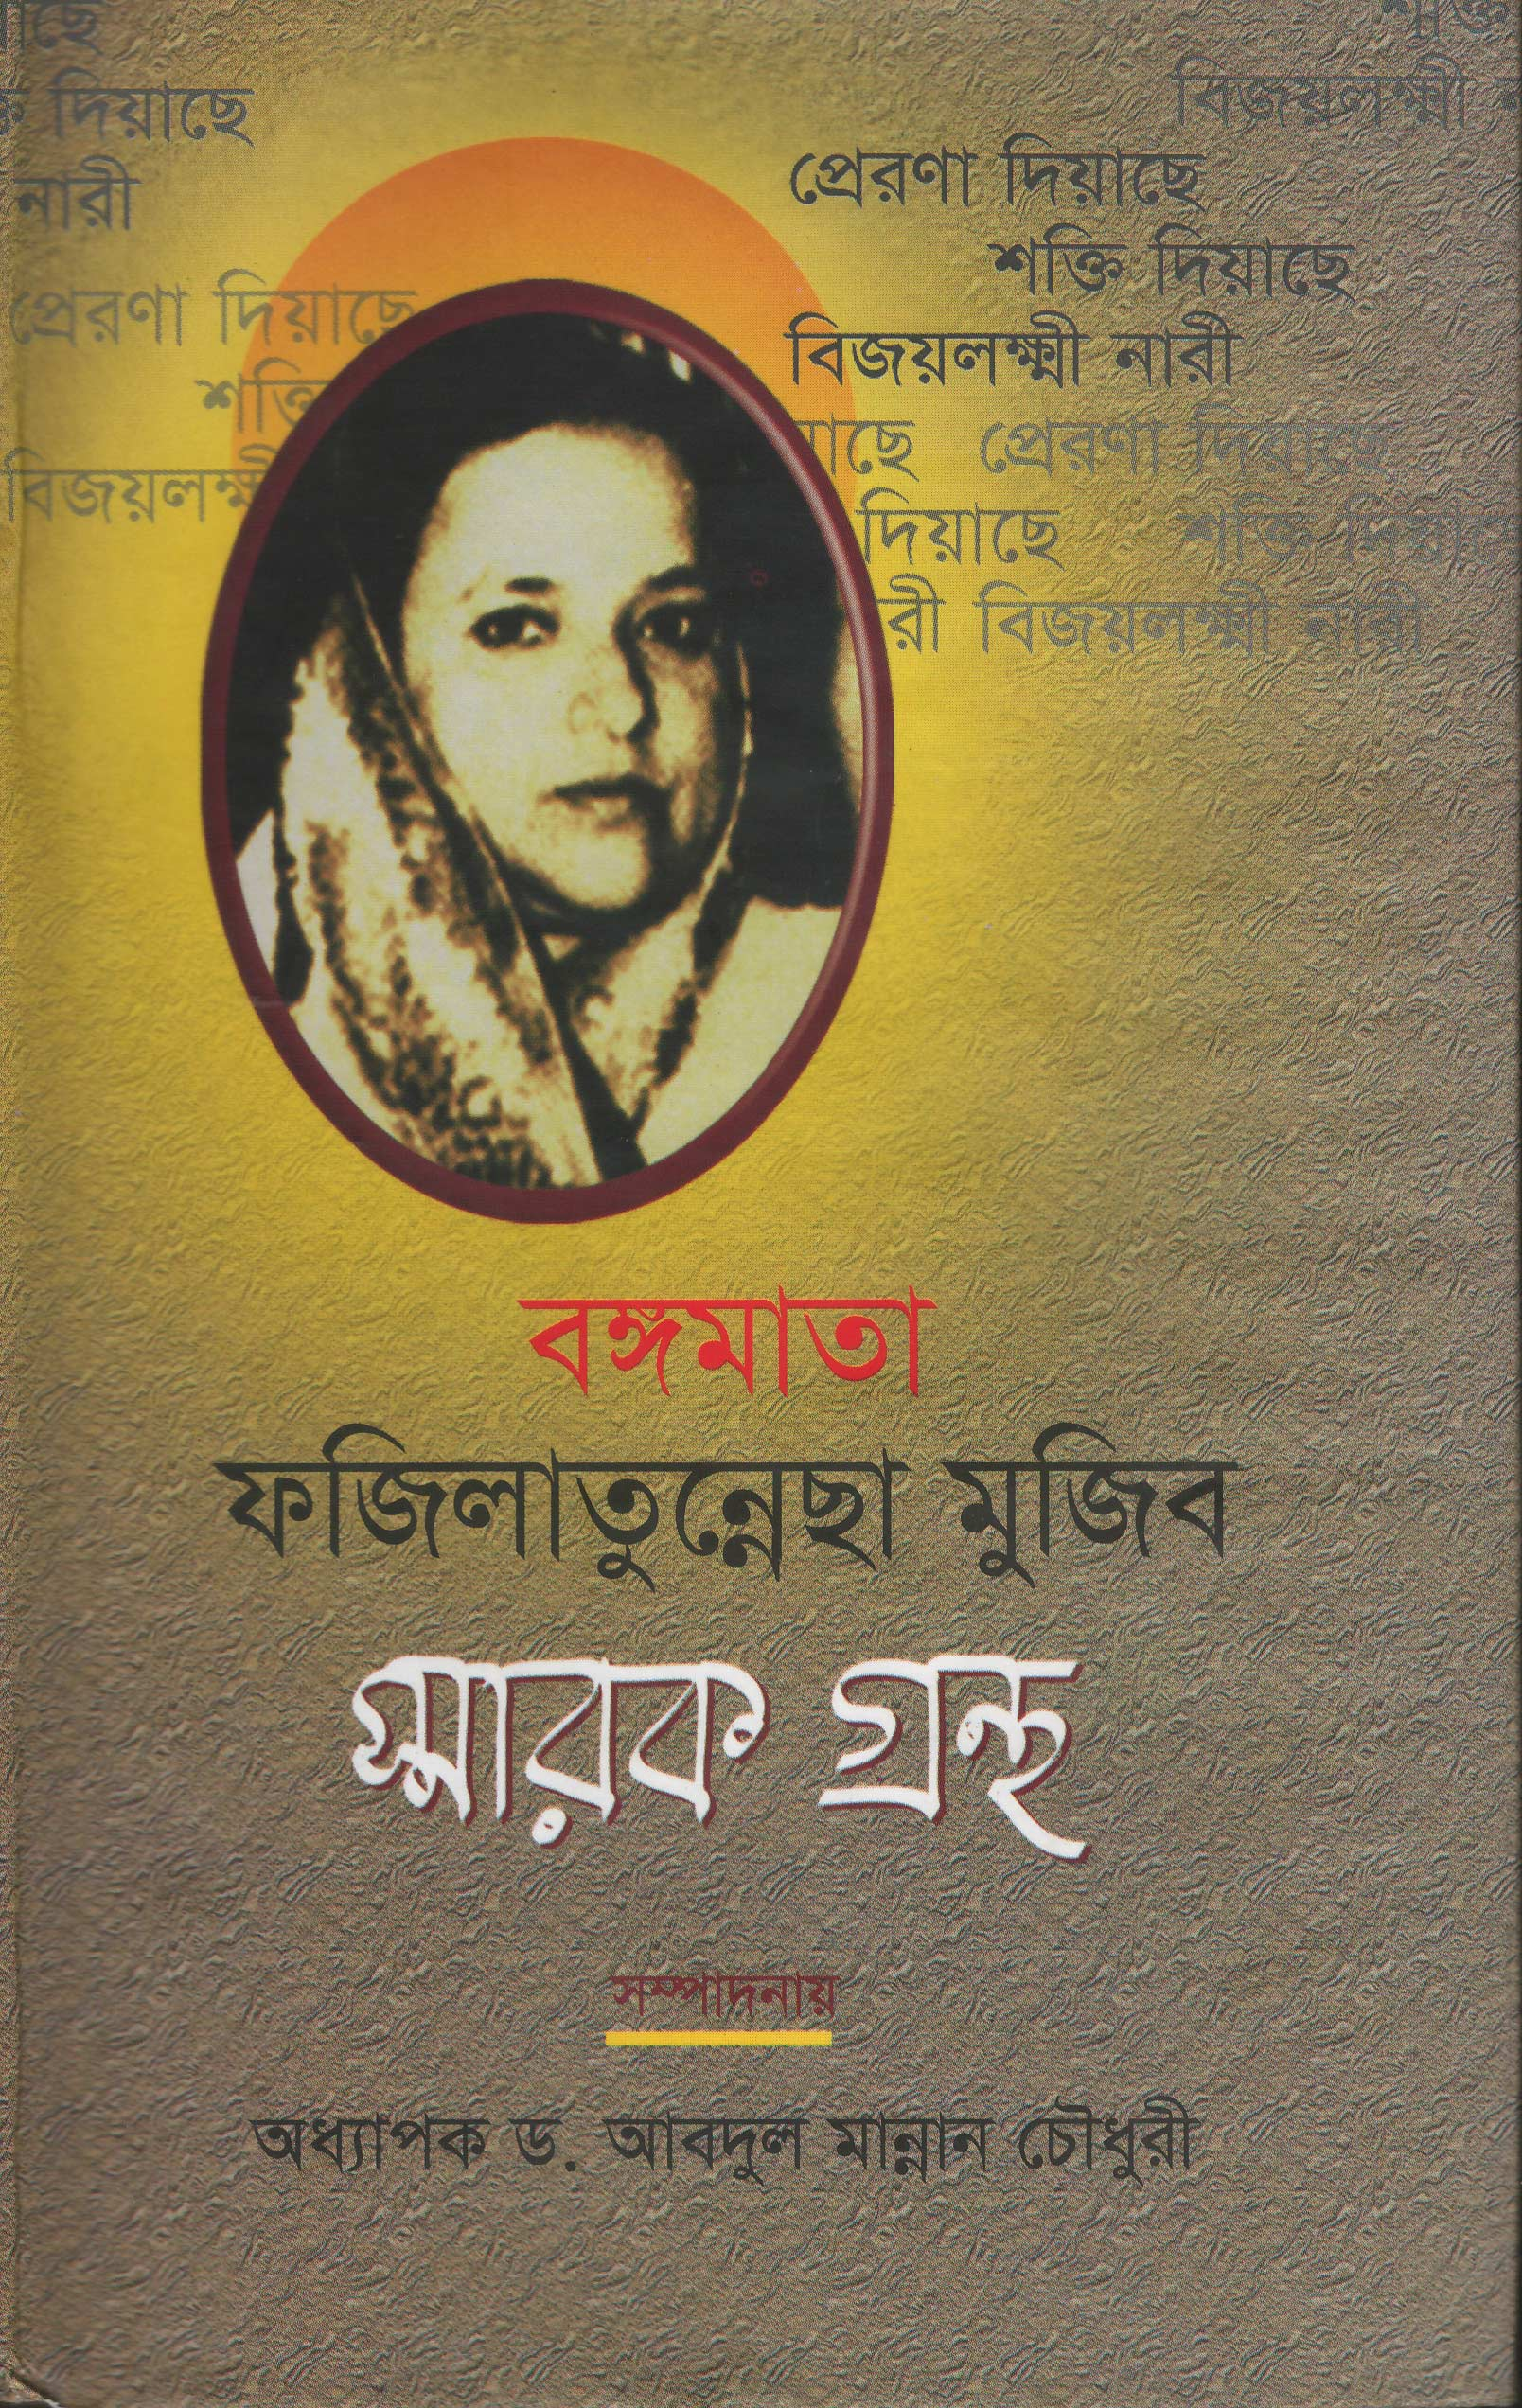 World University Vice Chancellor Book Bongomata Fazilatun Mujib Sharok Grontho